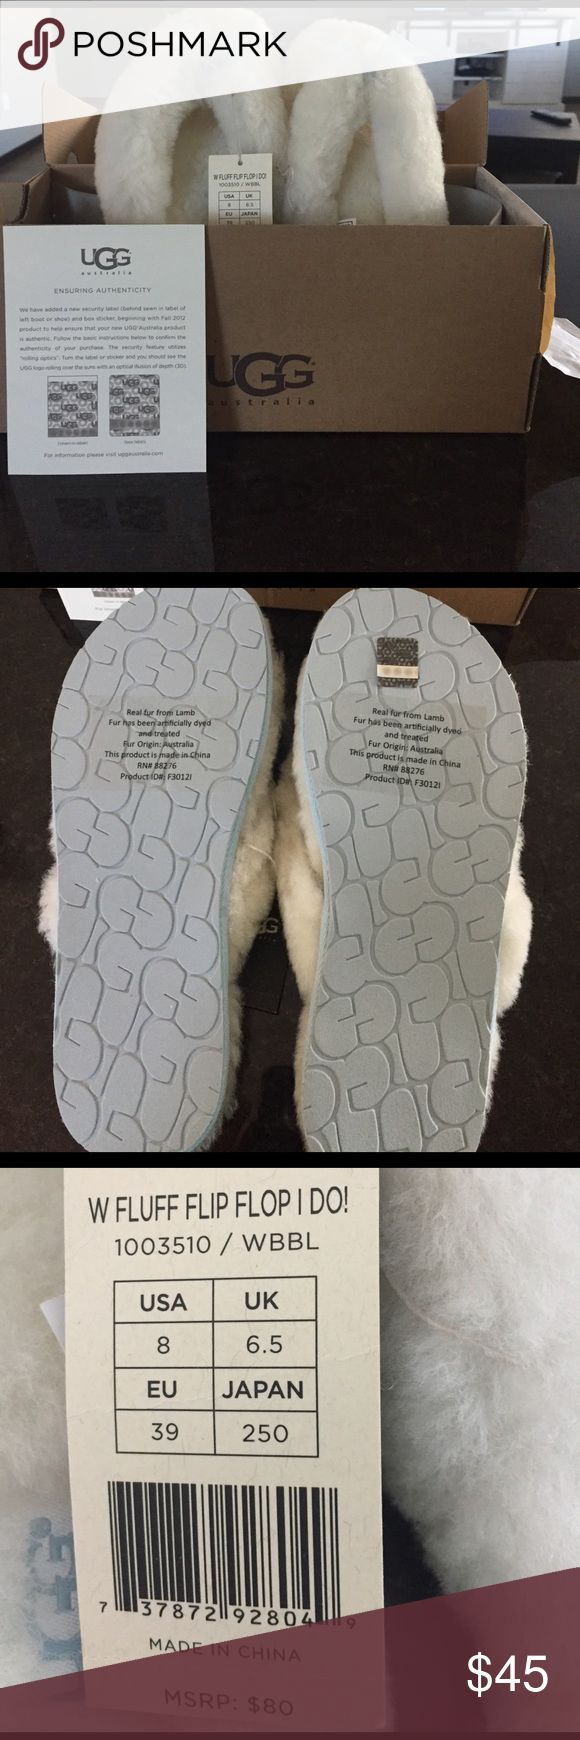 NWT ugg flip flop slippers Brand new with tags!!! Ugg blue and white flip flop slippers! UGG Shoes Slippers